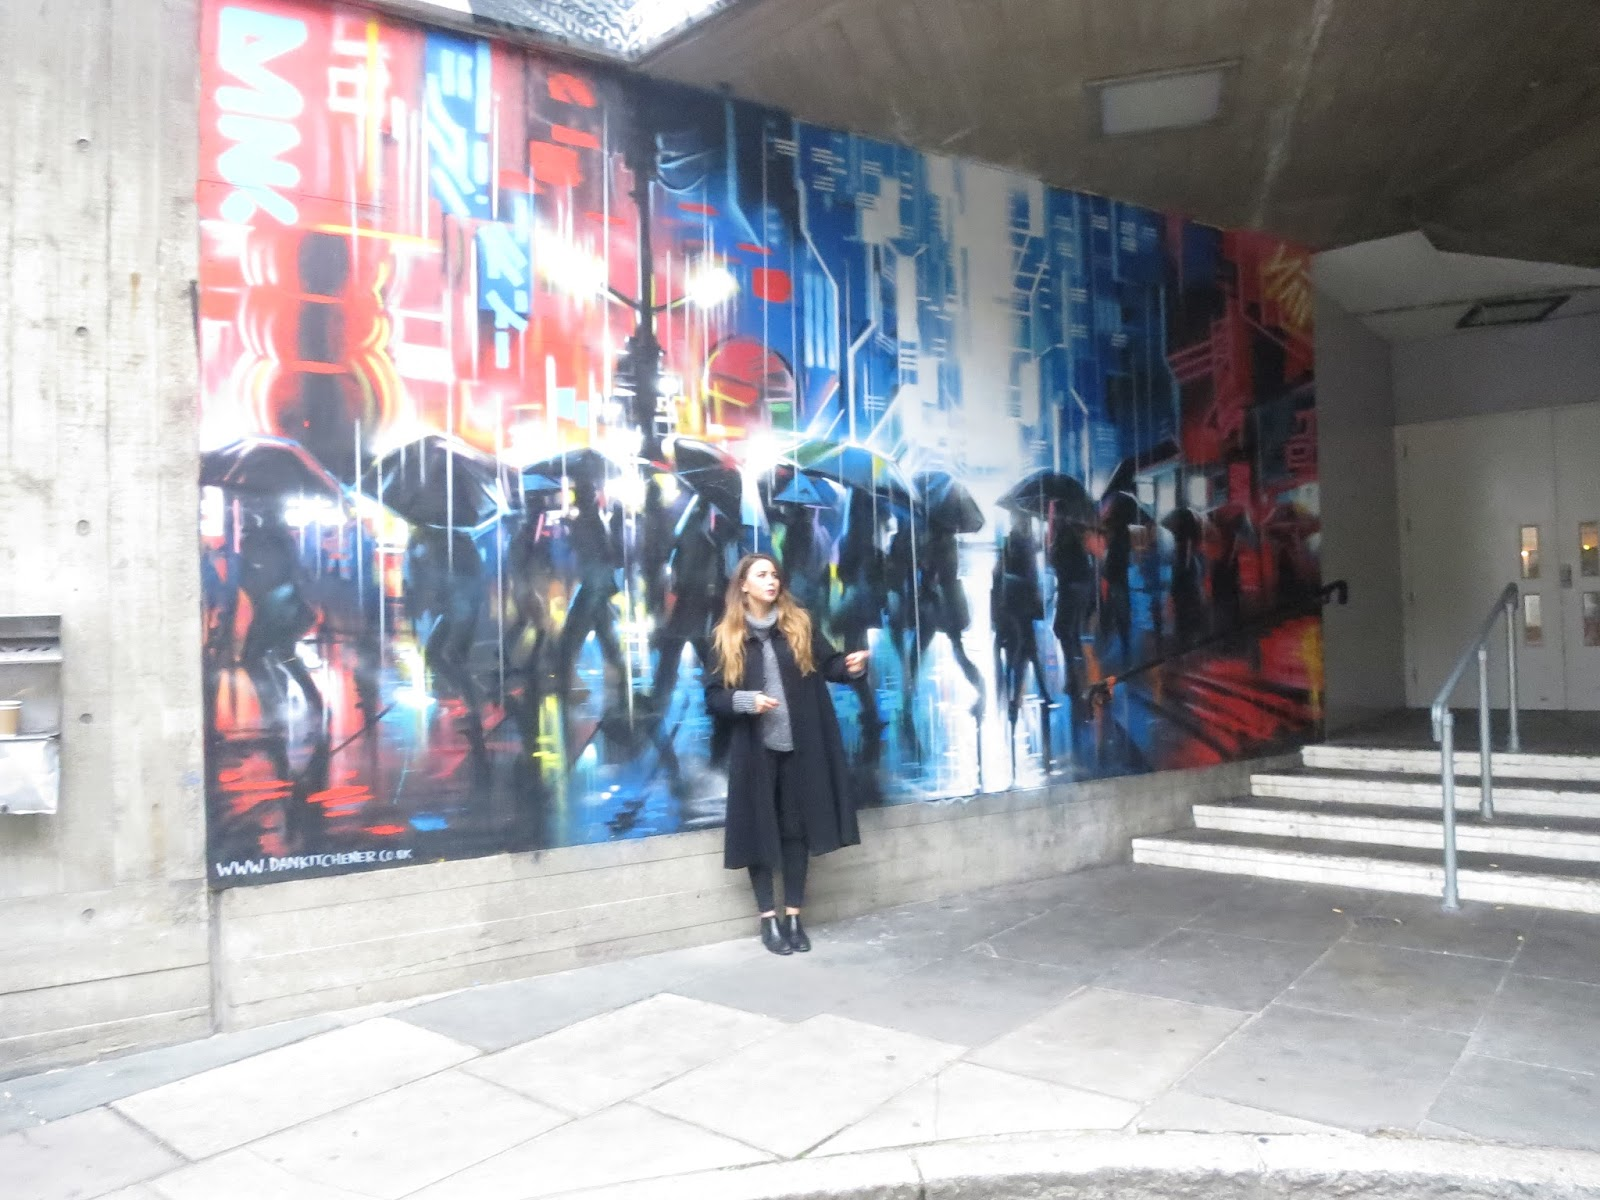 southbank-graffiti-london-photoshoot